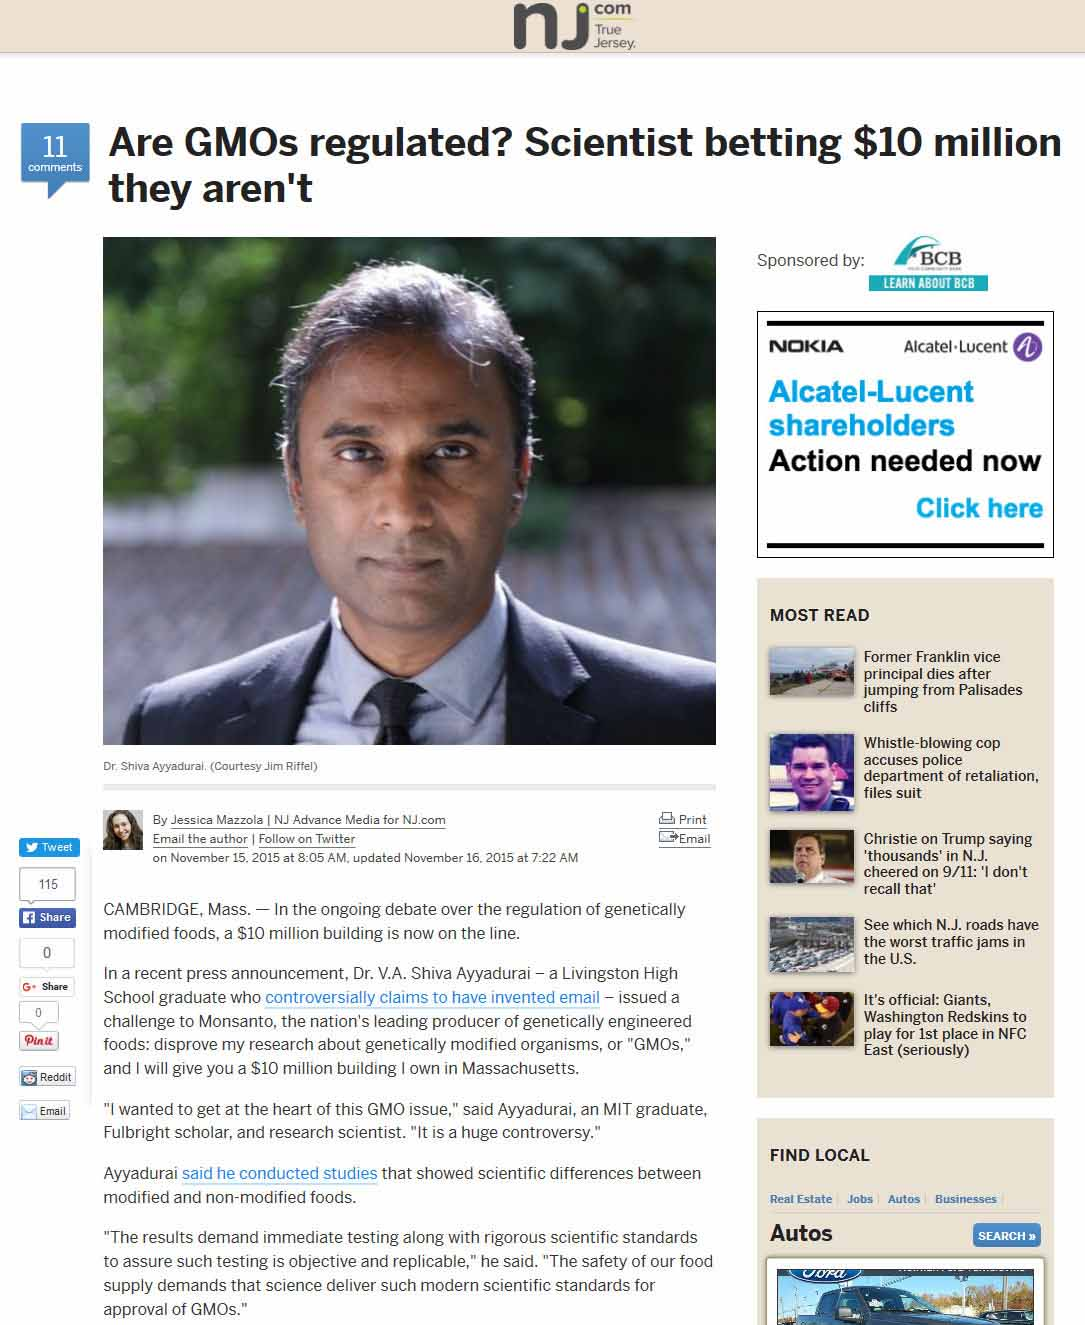 Are GMOs Regulated? Scientist Betting $10 Million They Aren't